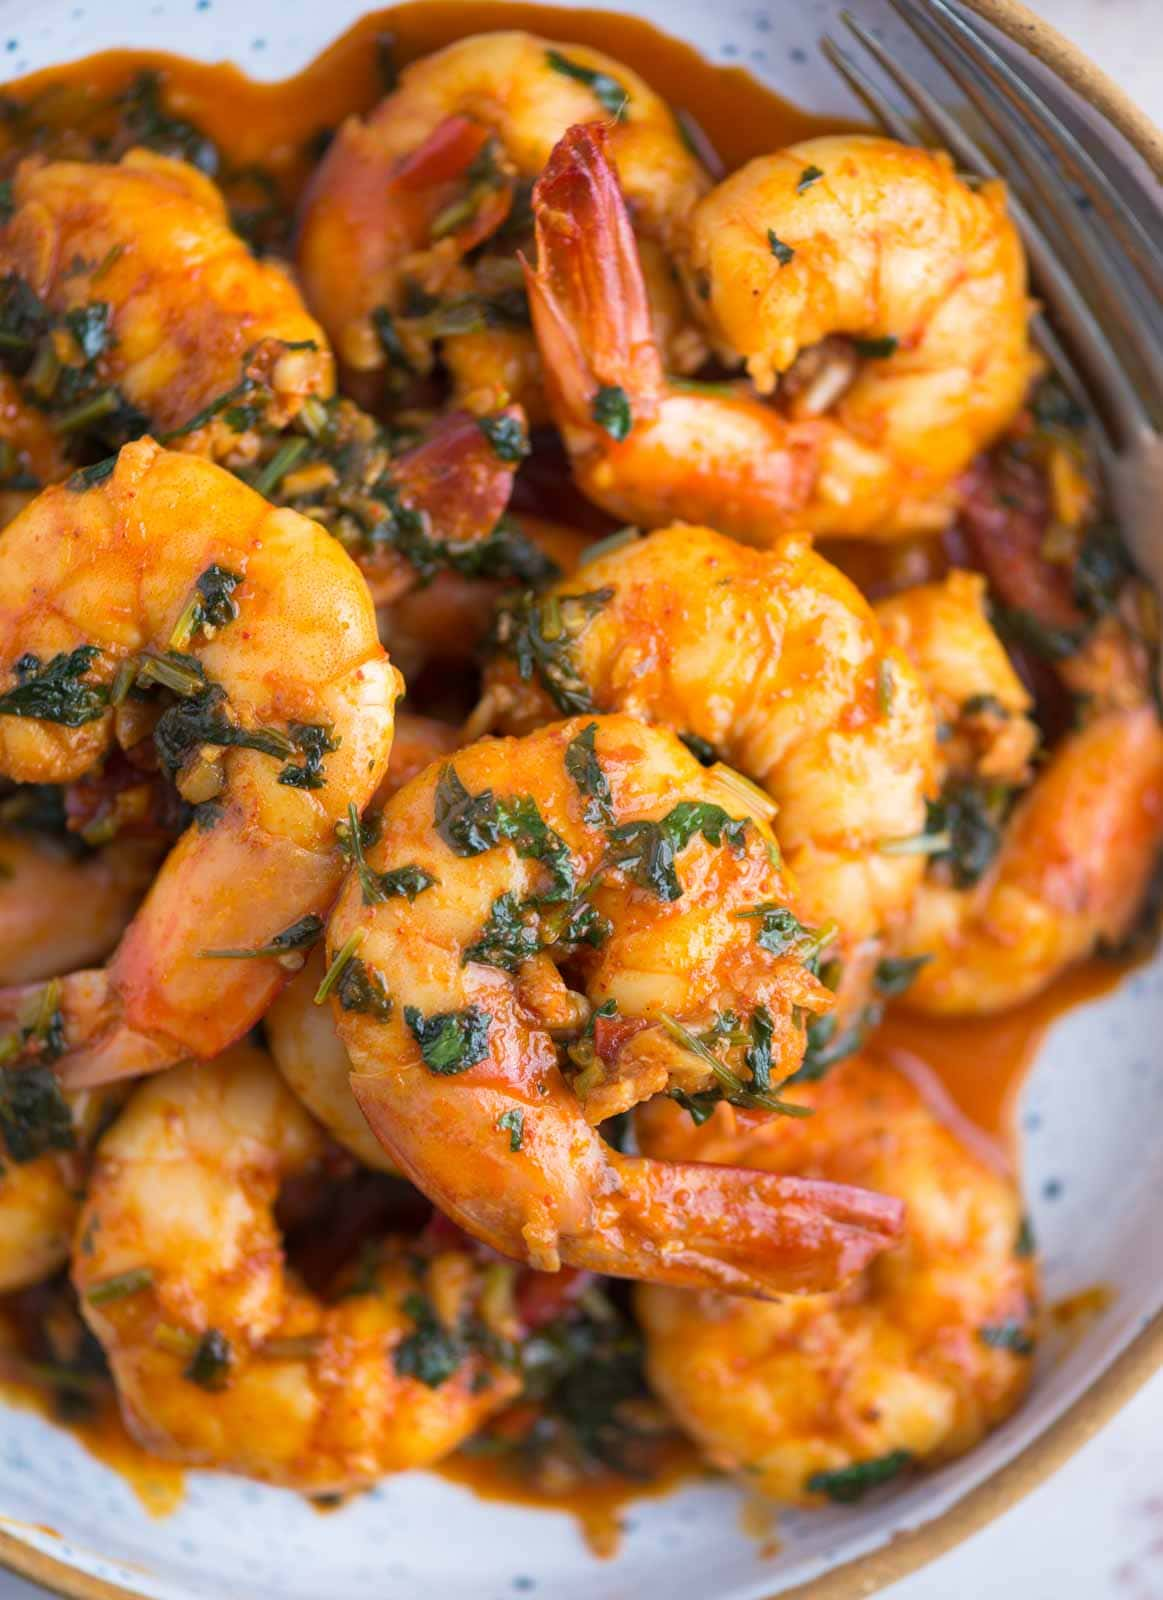 Shrimp and a few other pantry staples turned into this lip-smacking Chili Garlic Shrimp in less than 20 minutes. It is spicy, garlicky, and has loads of fresh cilantro.